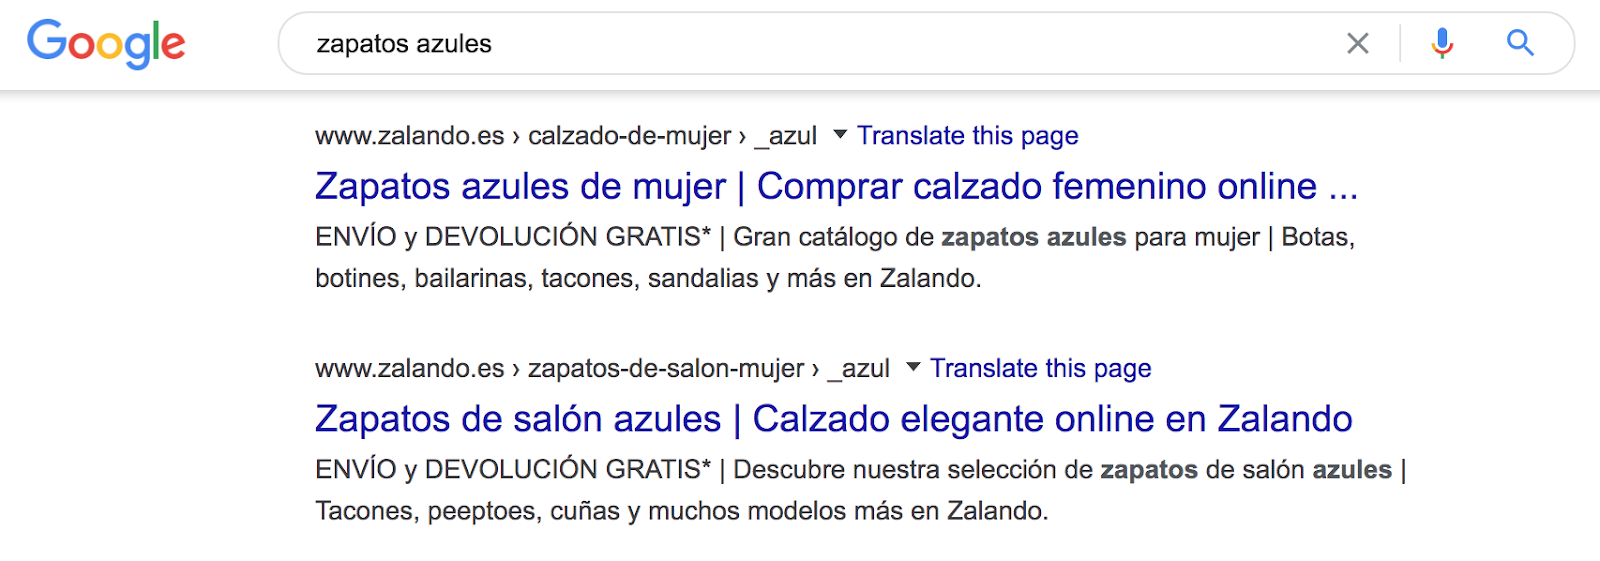 Spanish multilingual seo search for blue shoes in target language